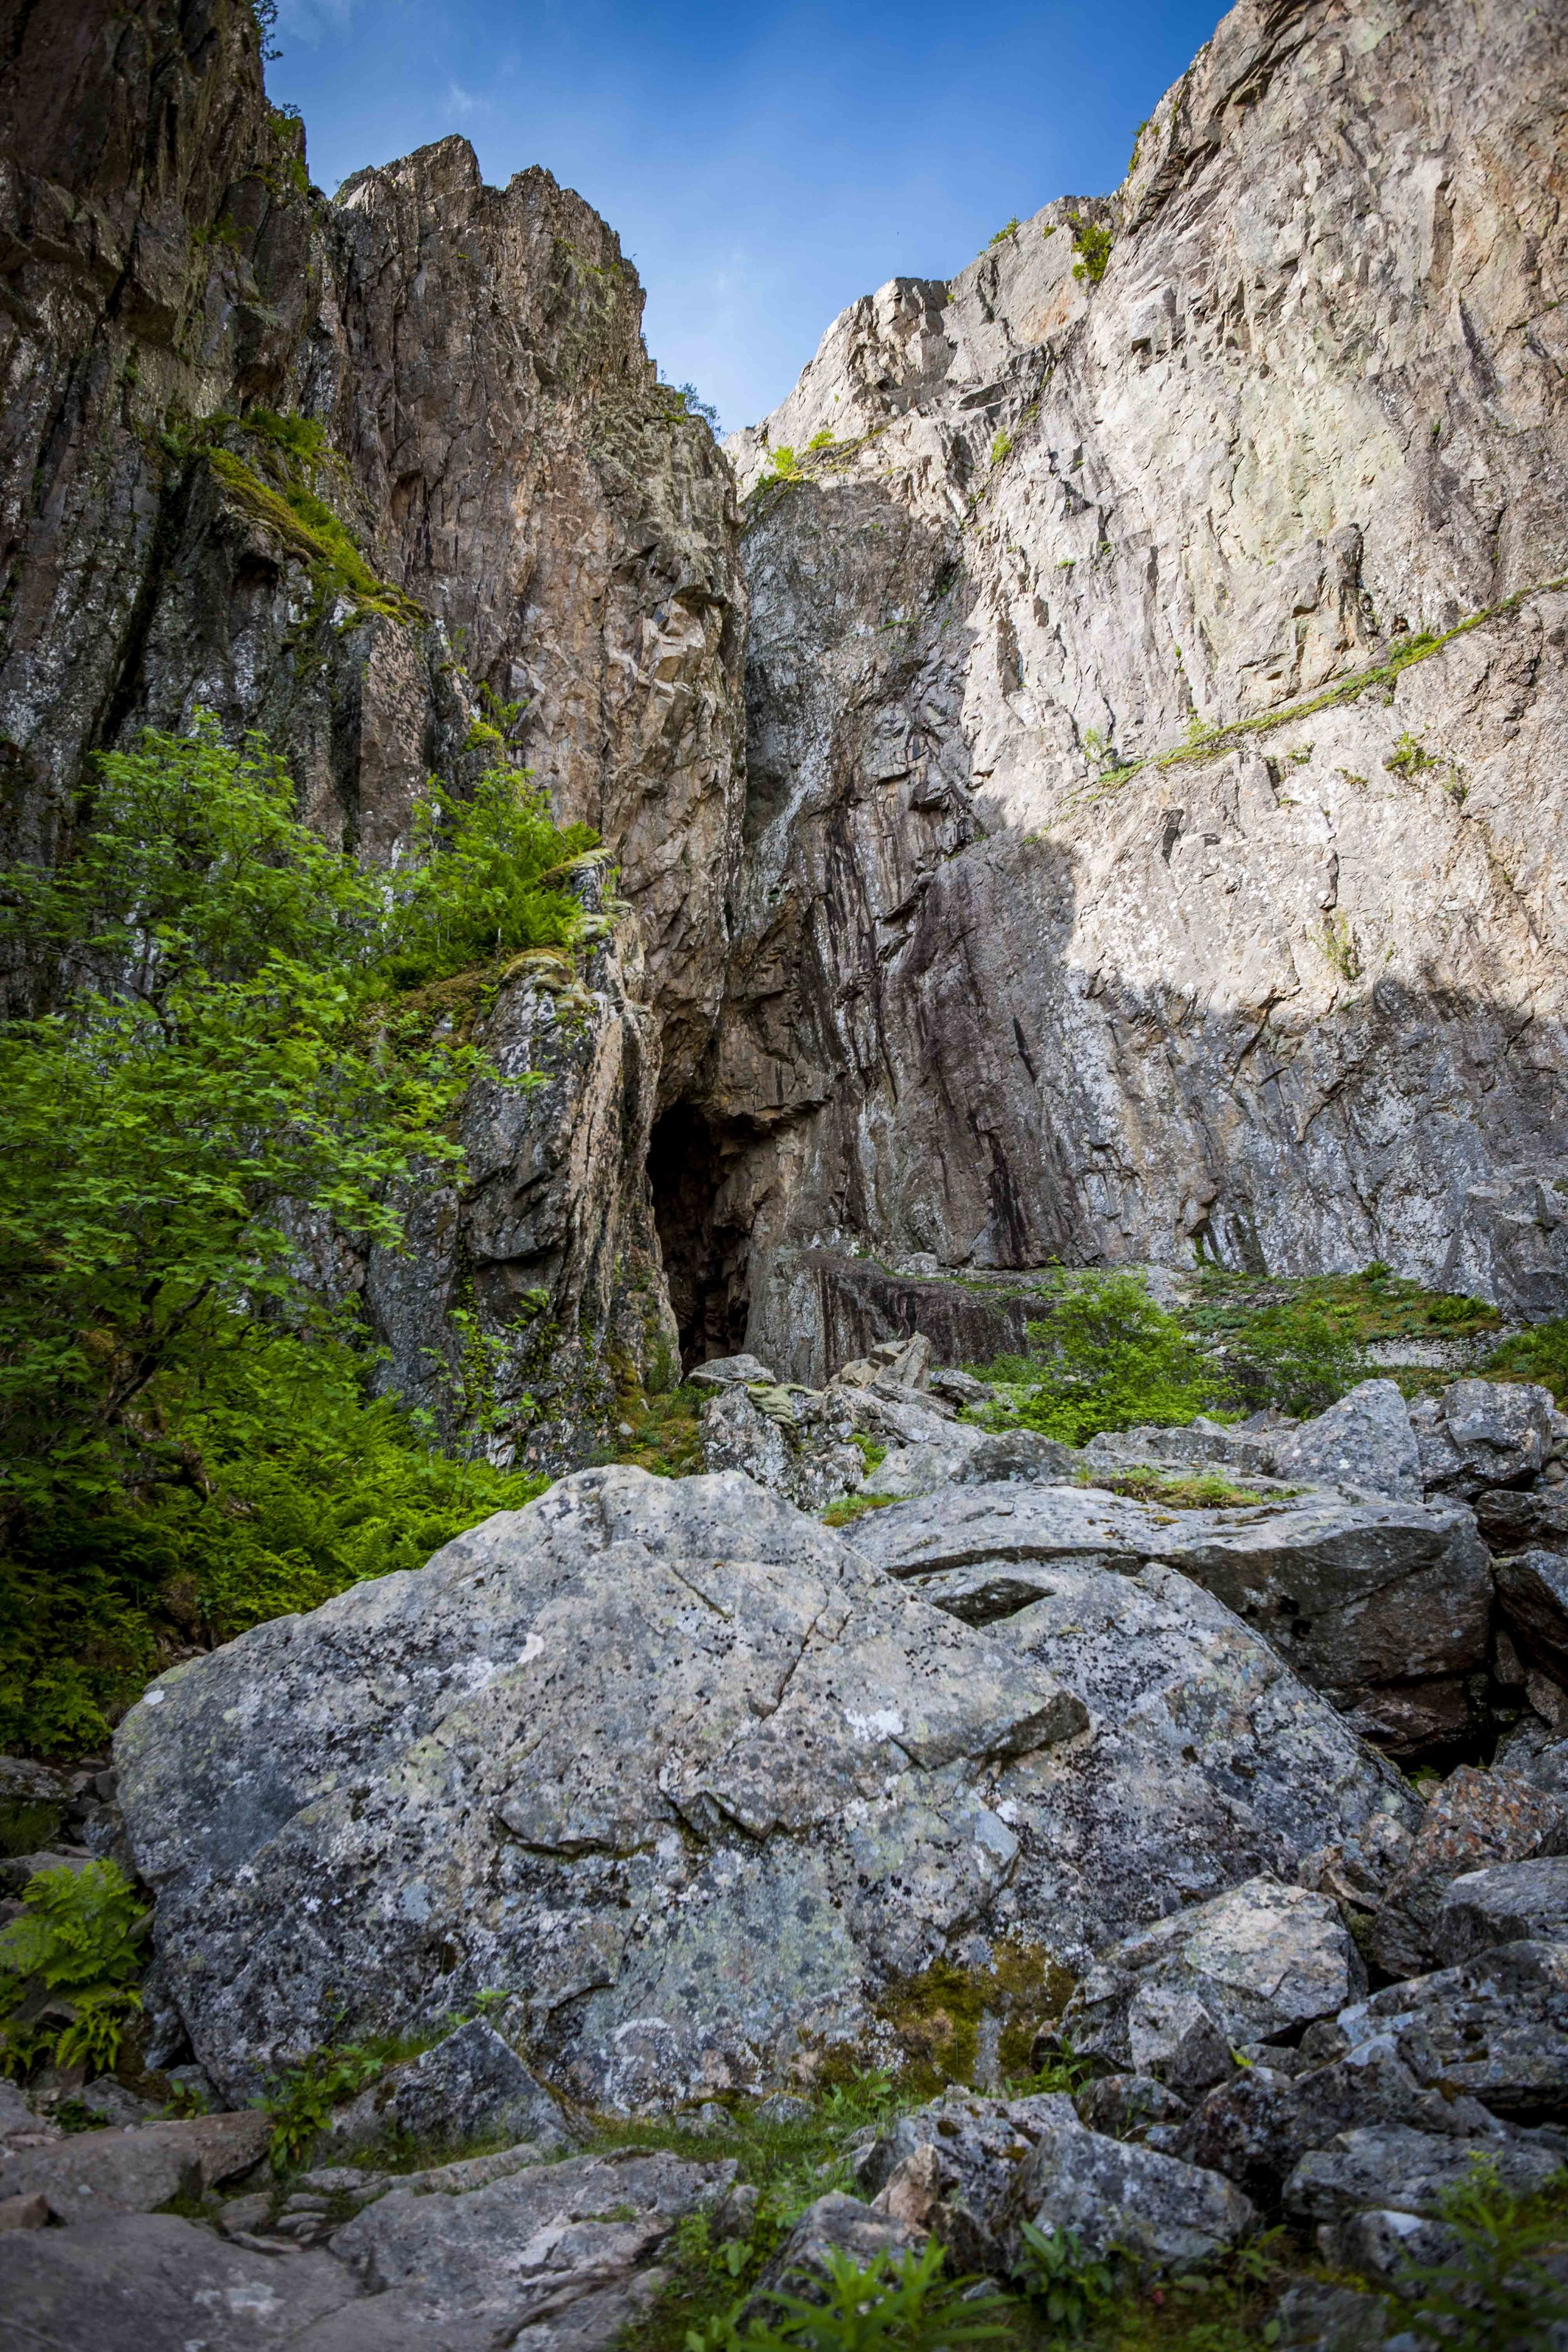 Easy climb up to Torghatten